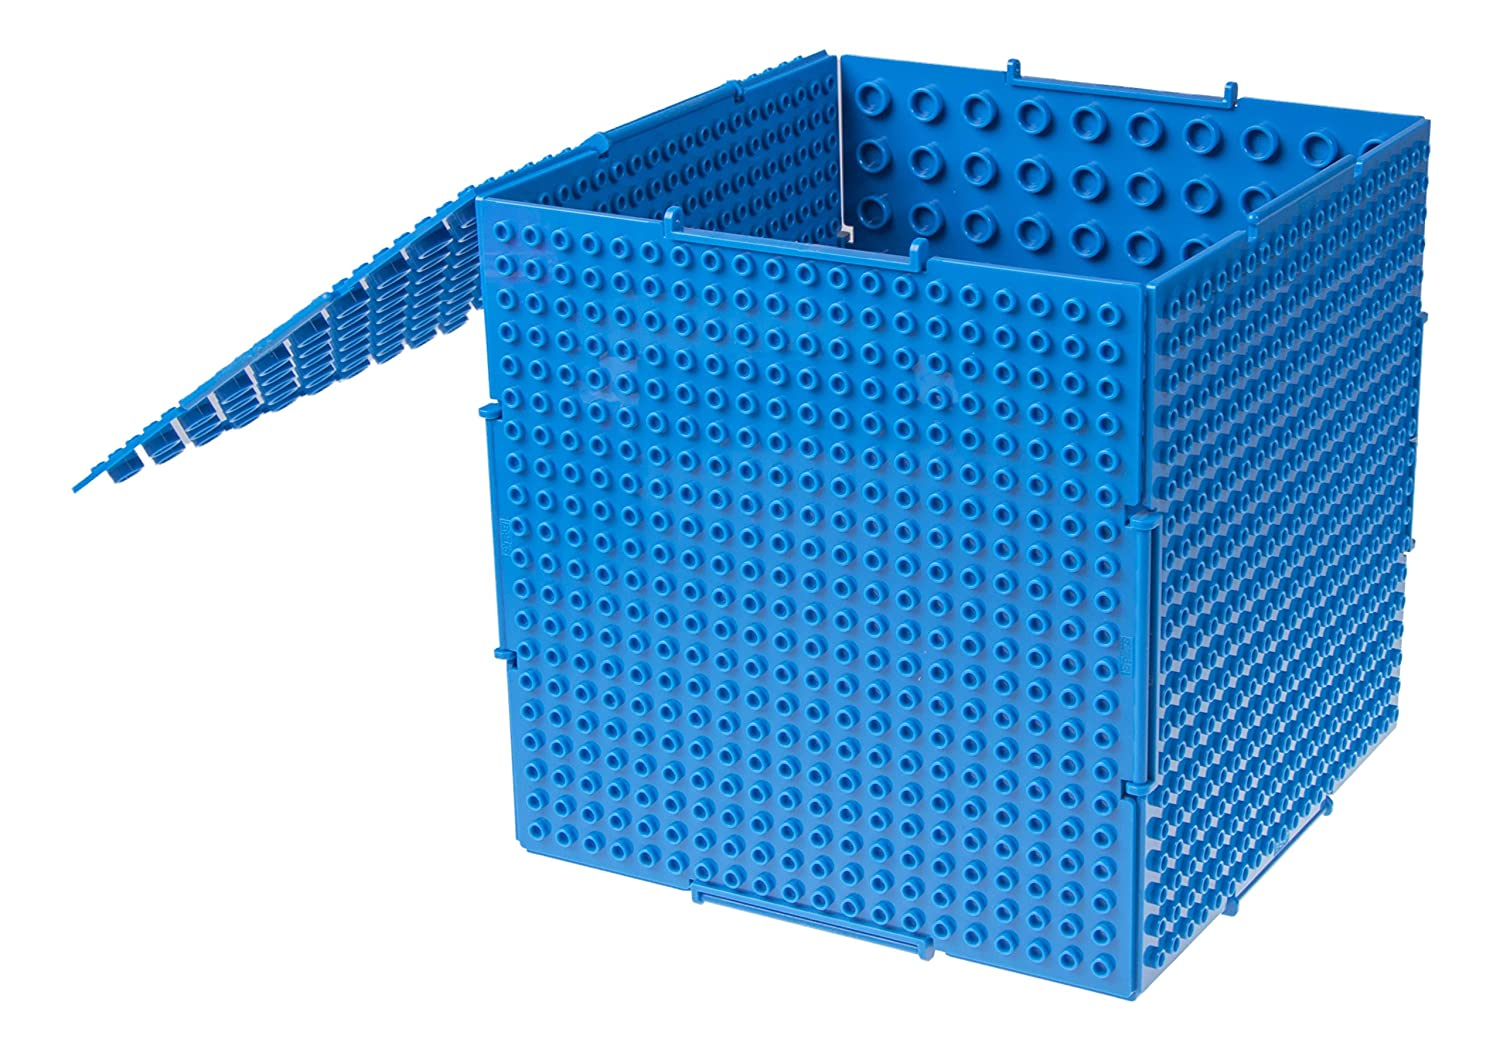 THE CUBE by Strictly Briks | 3D Building Brick & Storage Container Set Pat. Pending | Compatible With All Major Brands | 6 Square Plates | Double Sided for Large & Small Bricks (Blue) Review